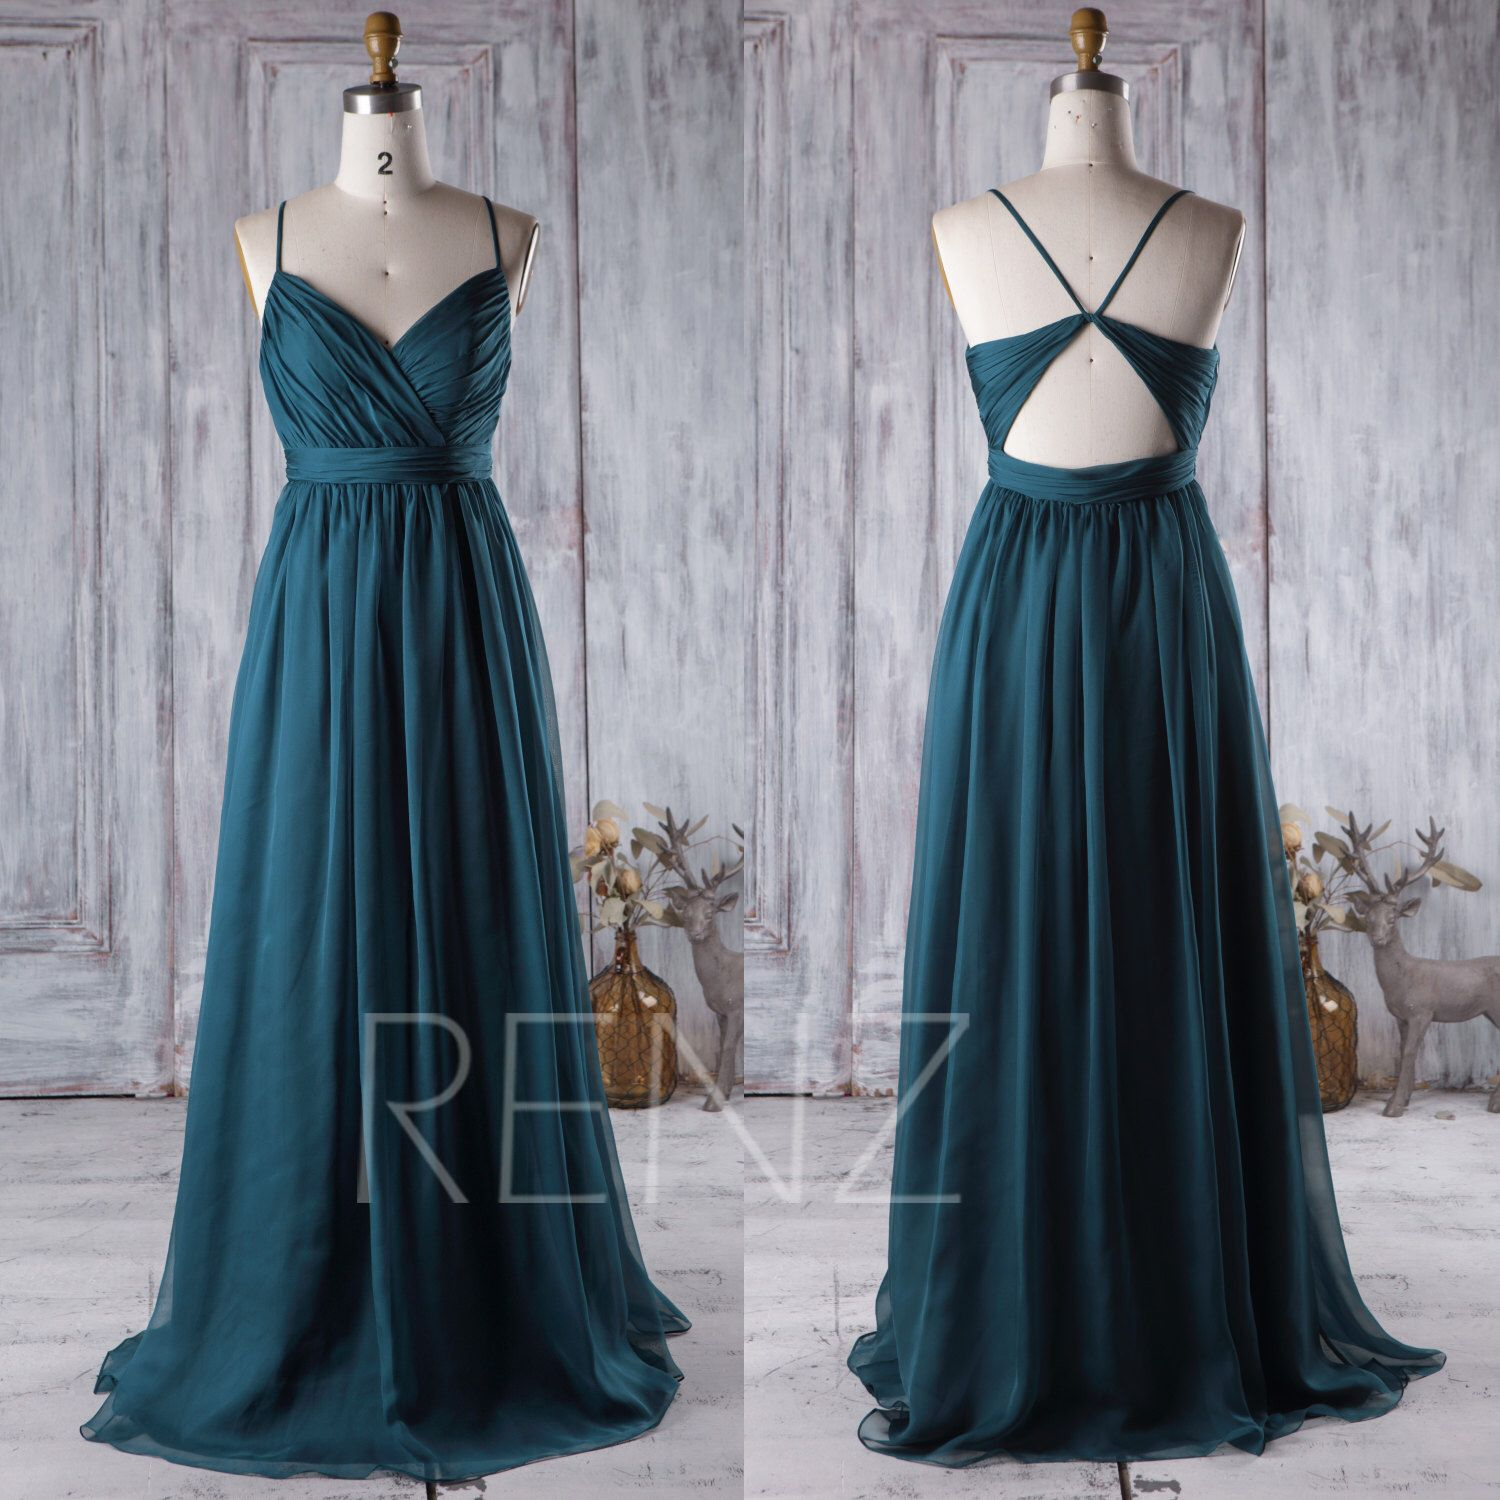 877bb69dcf7 Bridesmaid Dress Vintage Blue Chiffon Dress Wedding Dress Spaghetti ...